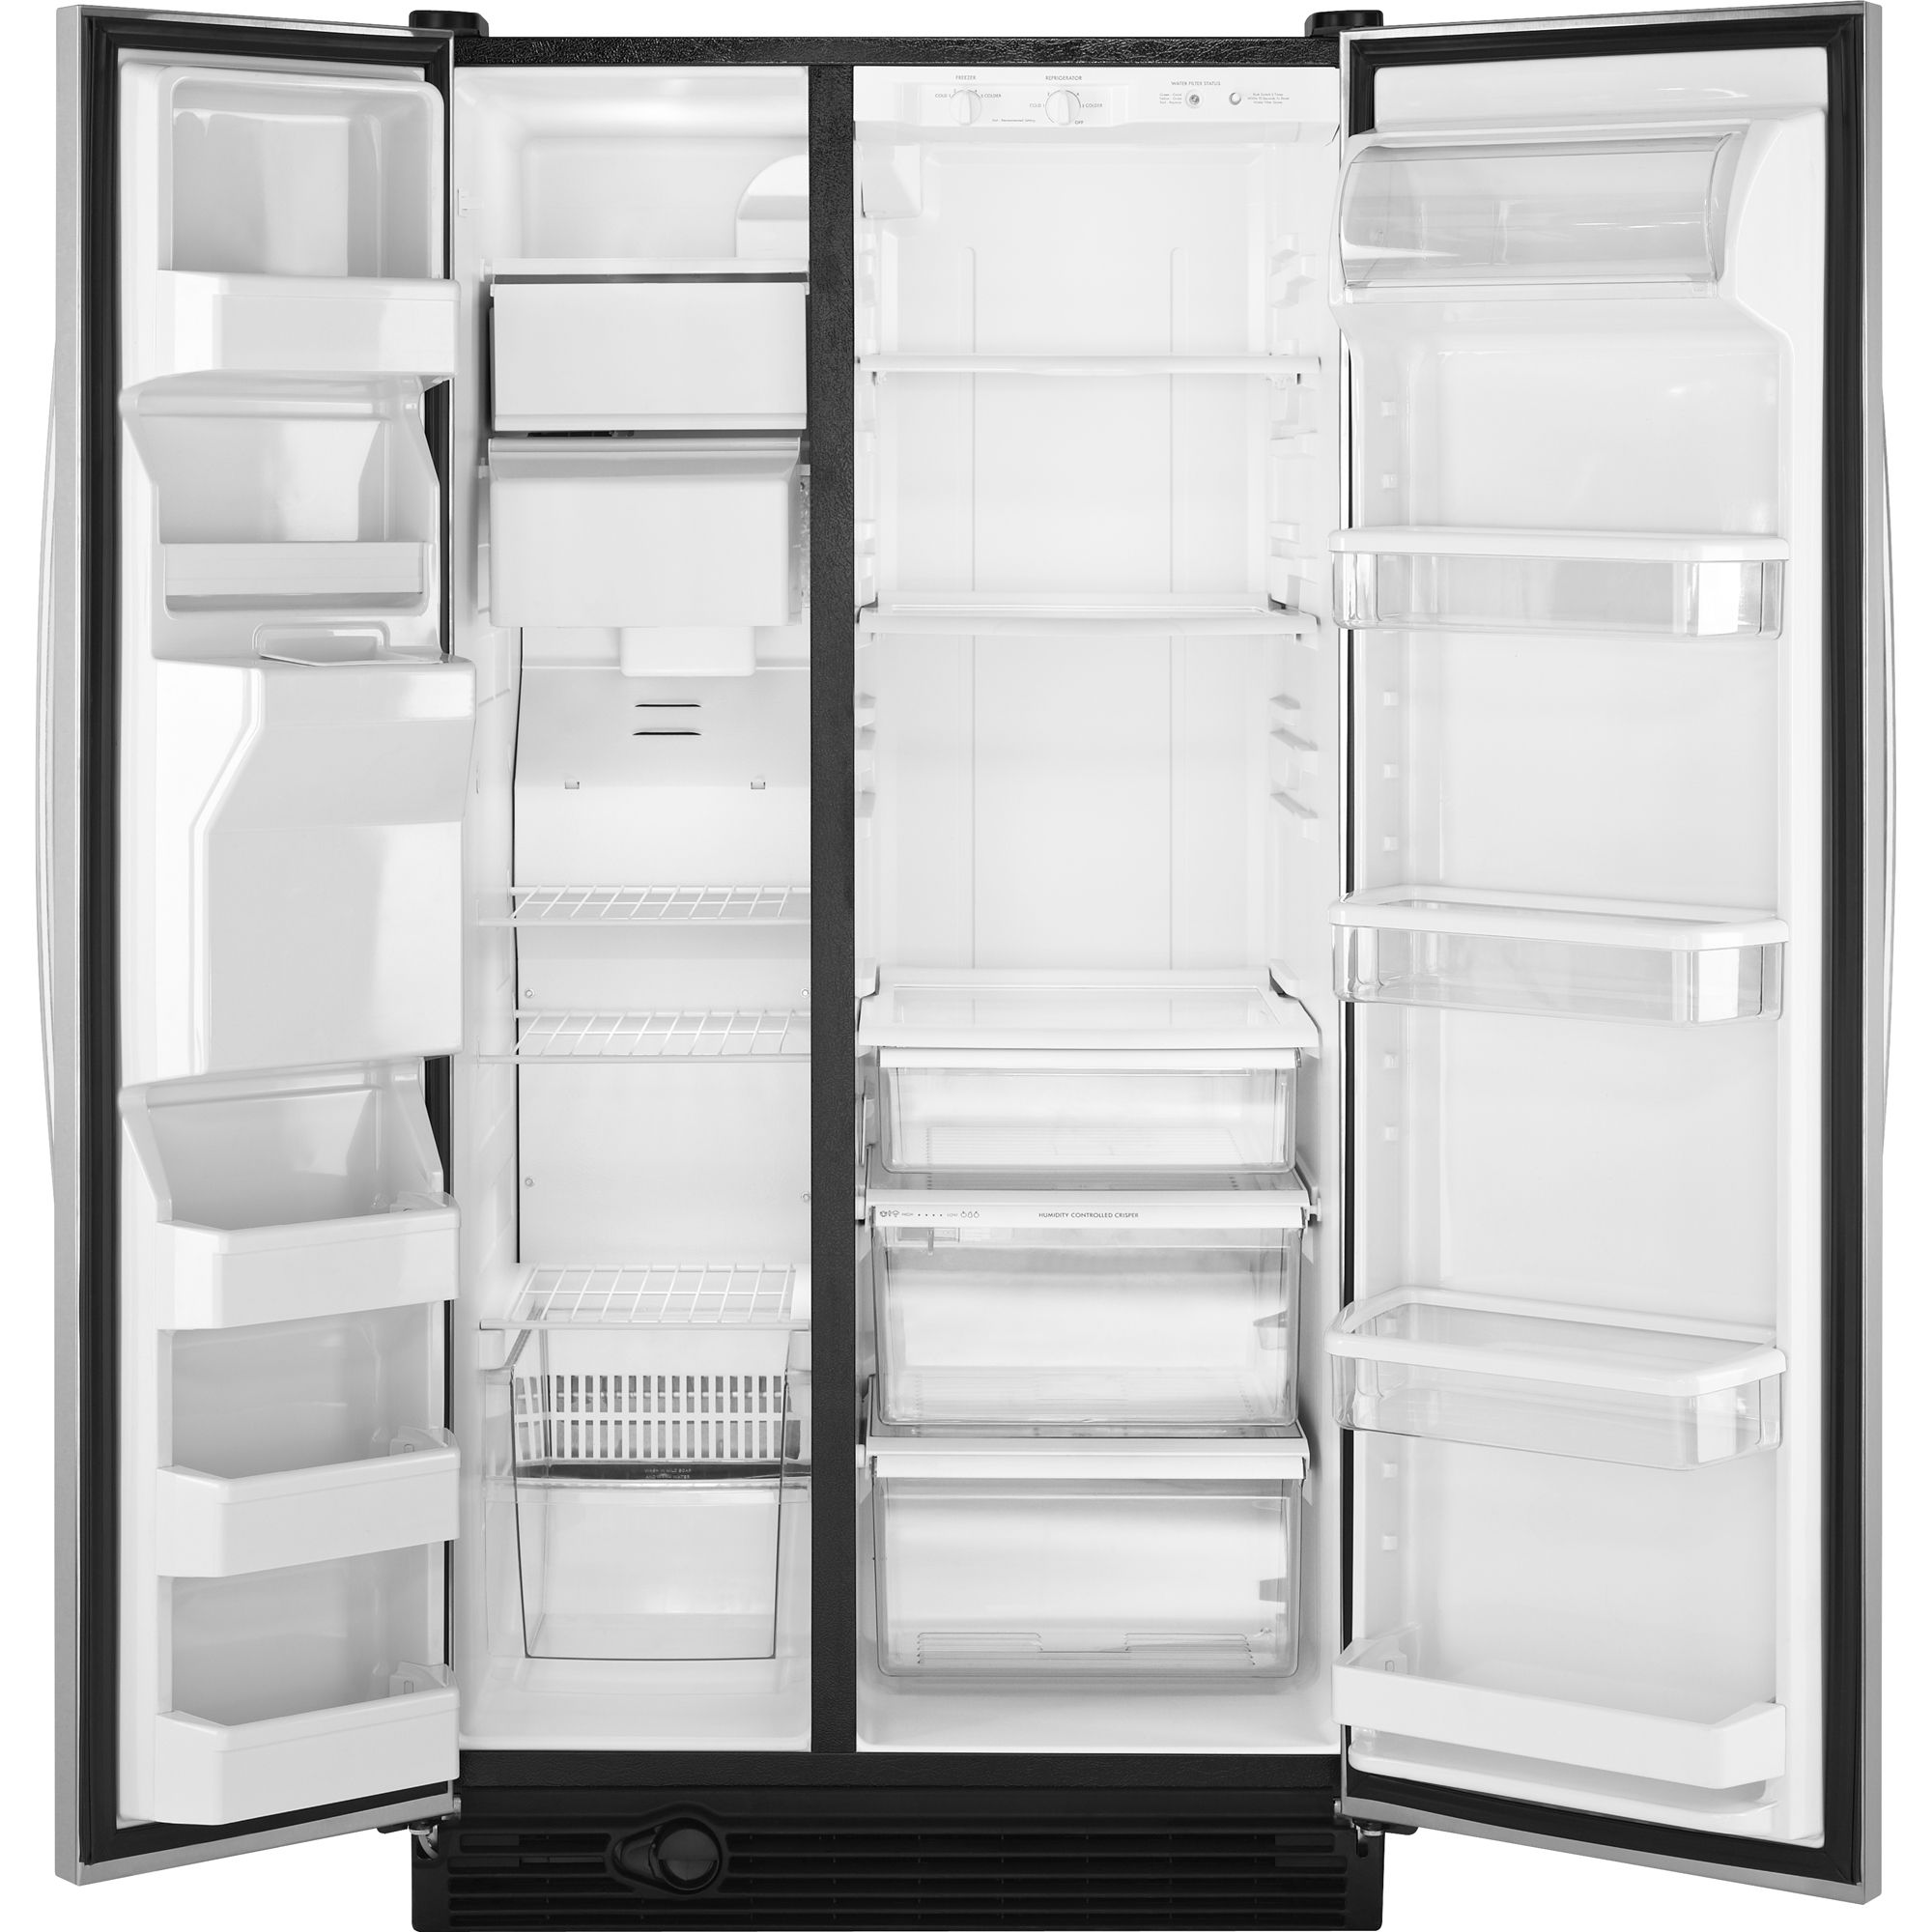 Kenmore 25.1 cu. ft. Side-by-Side Refrigerator w/ Ice & Water Dispenser - Stainless Steel